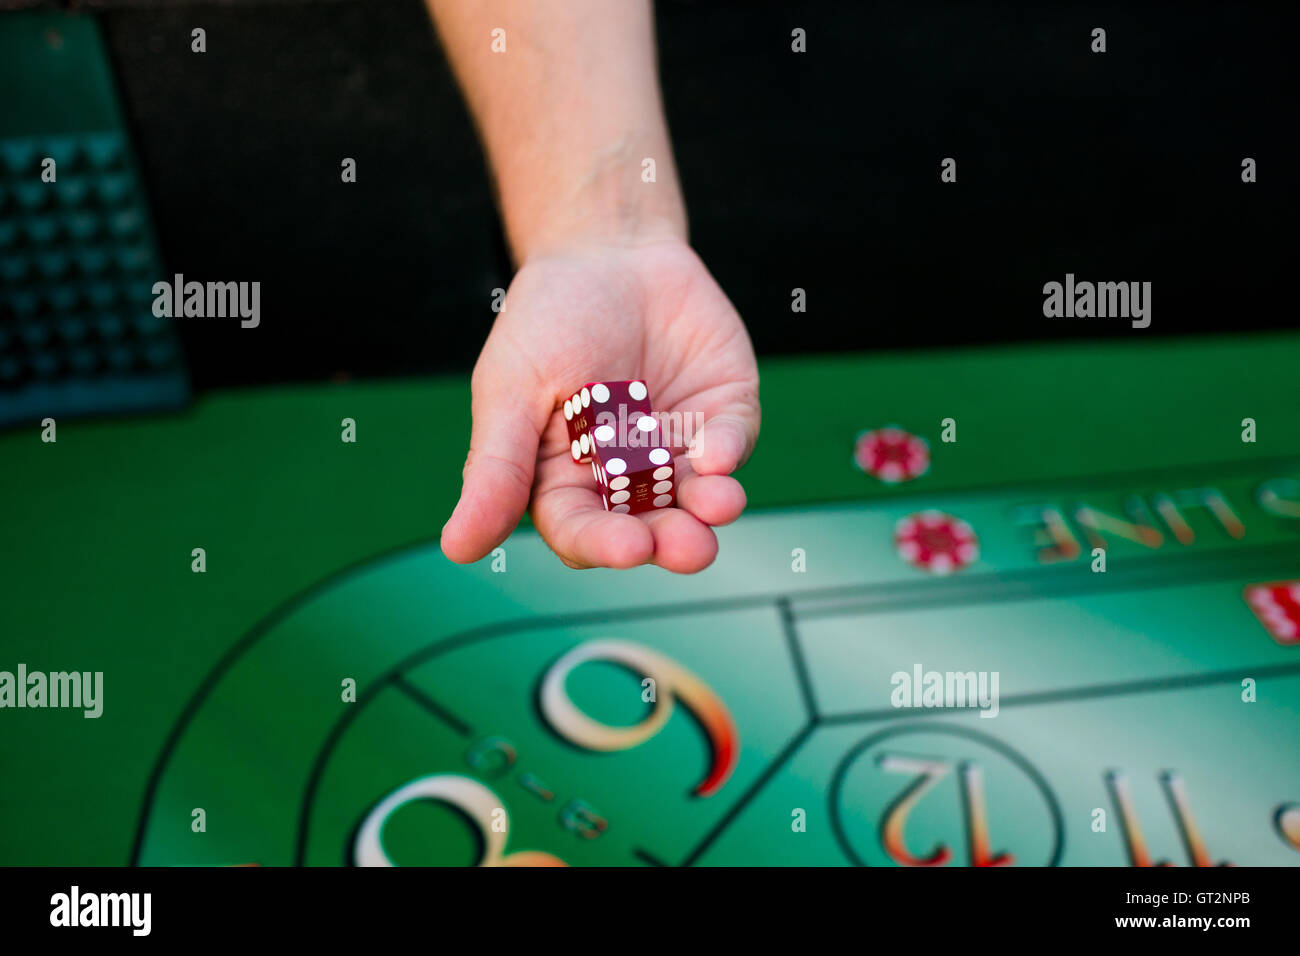 Holding Dice At Craps Table - Stock Image